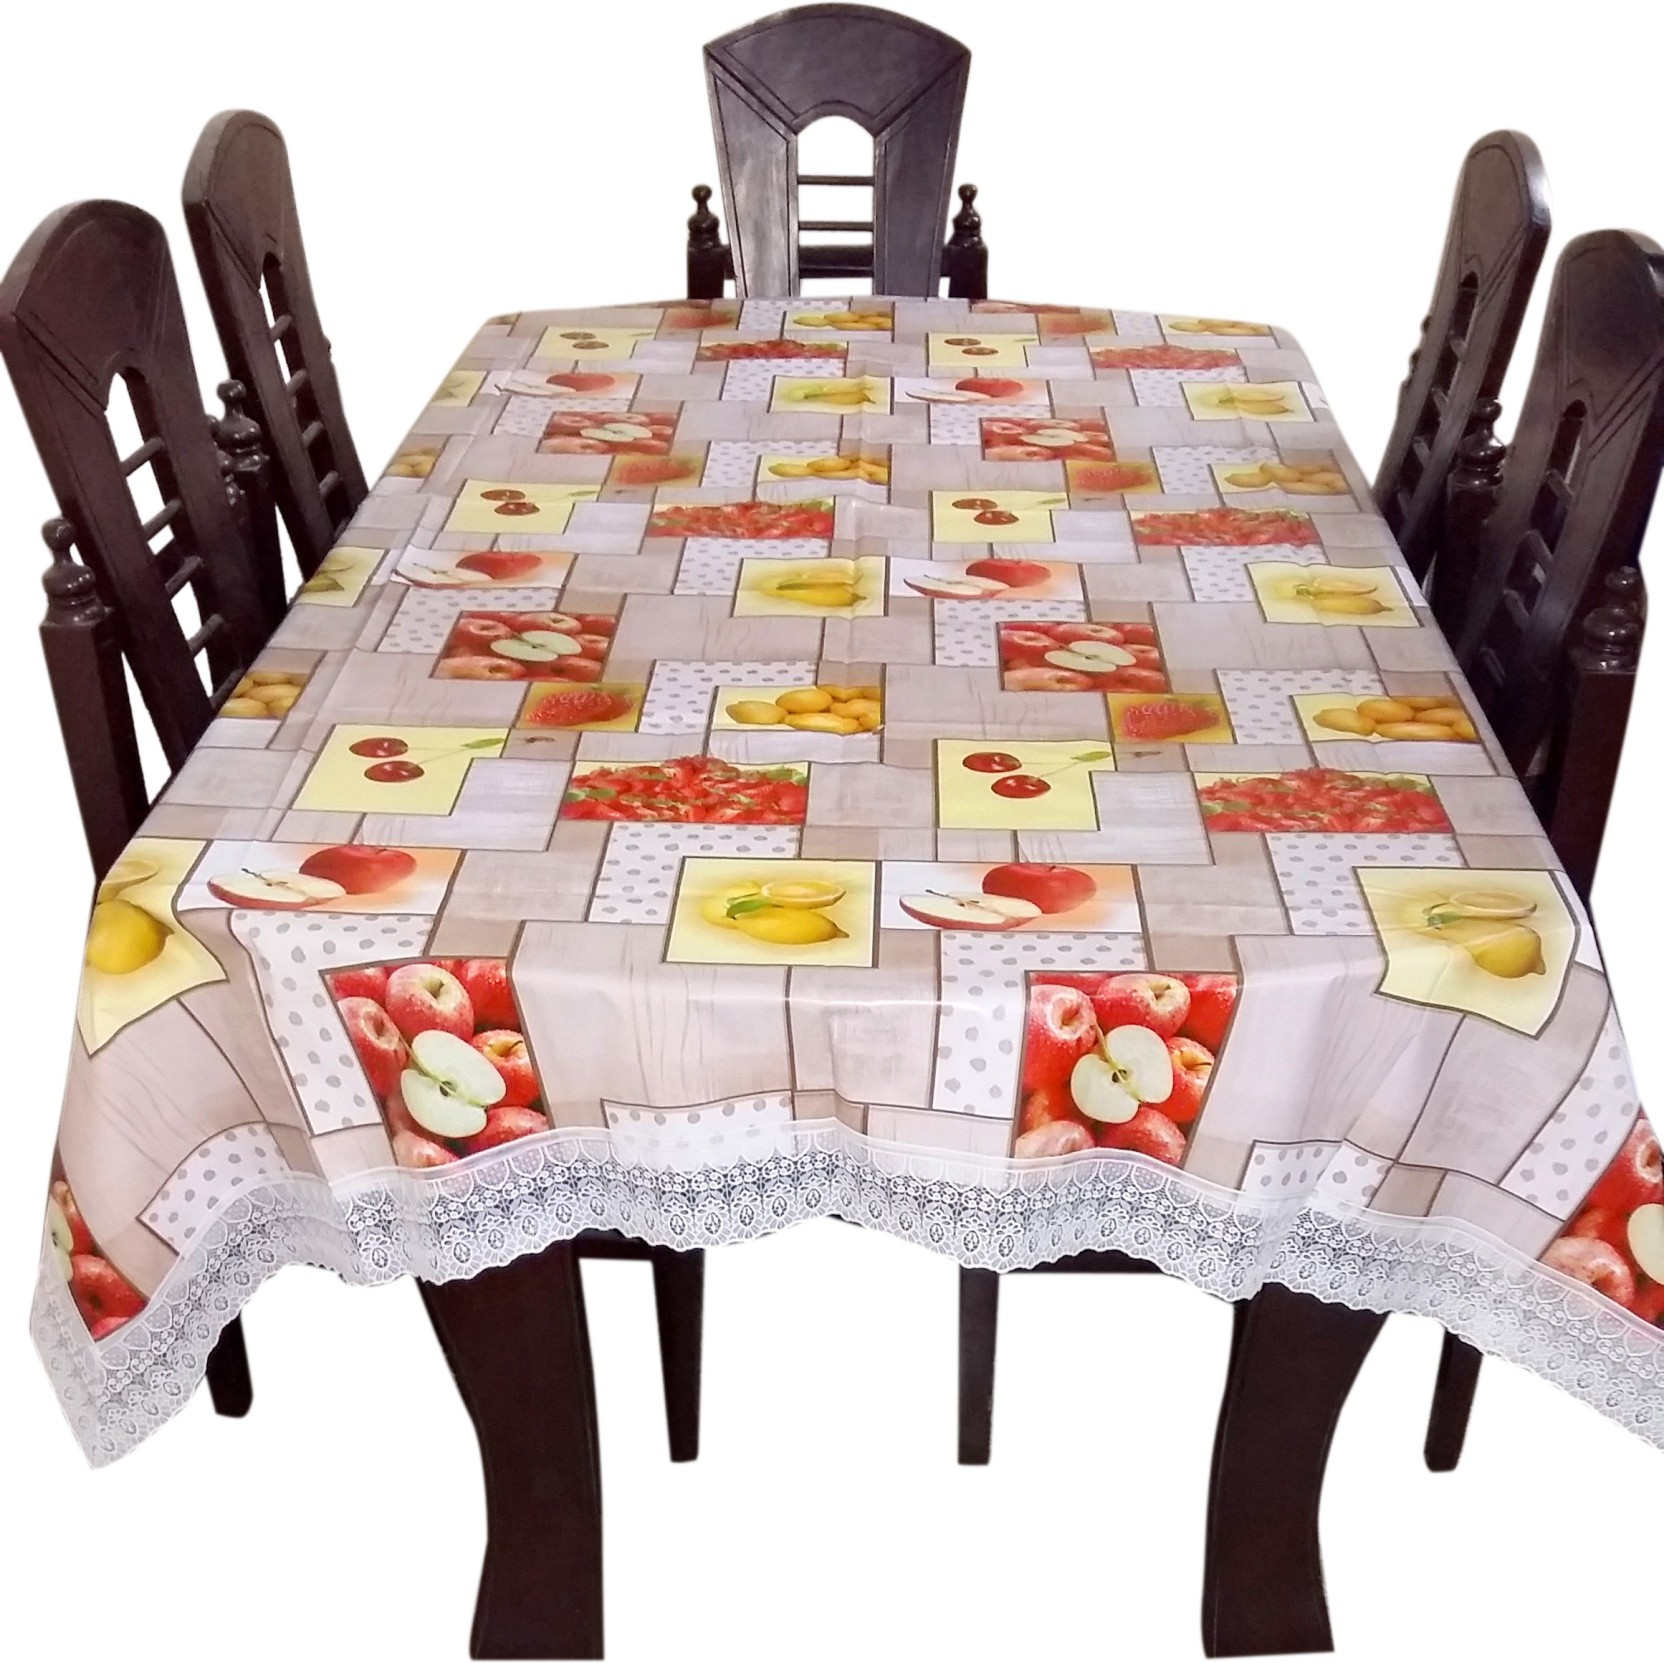 Ryka Floral 6 Seater Table Cover Buy Ryka Floral 6  : tcnw007 6090 1 ryka dining table original imae4zutg2dzfgvj from www.flipkart.com size 1664 x 1663 jpeg 455kB